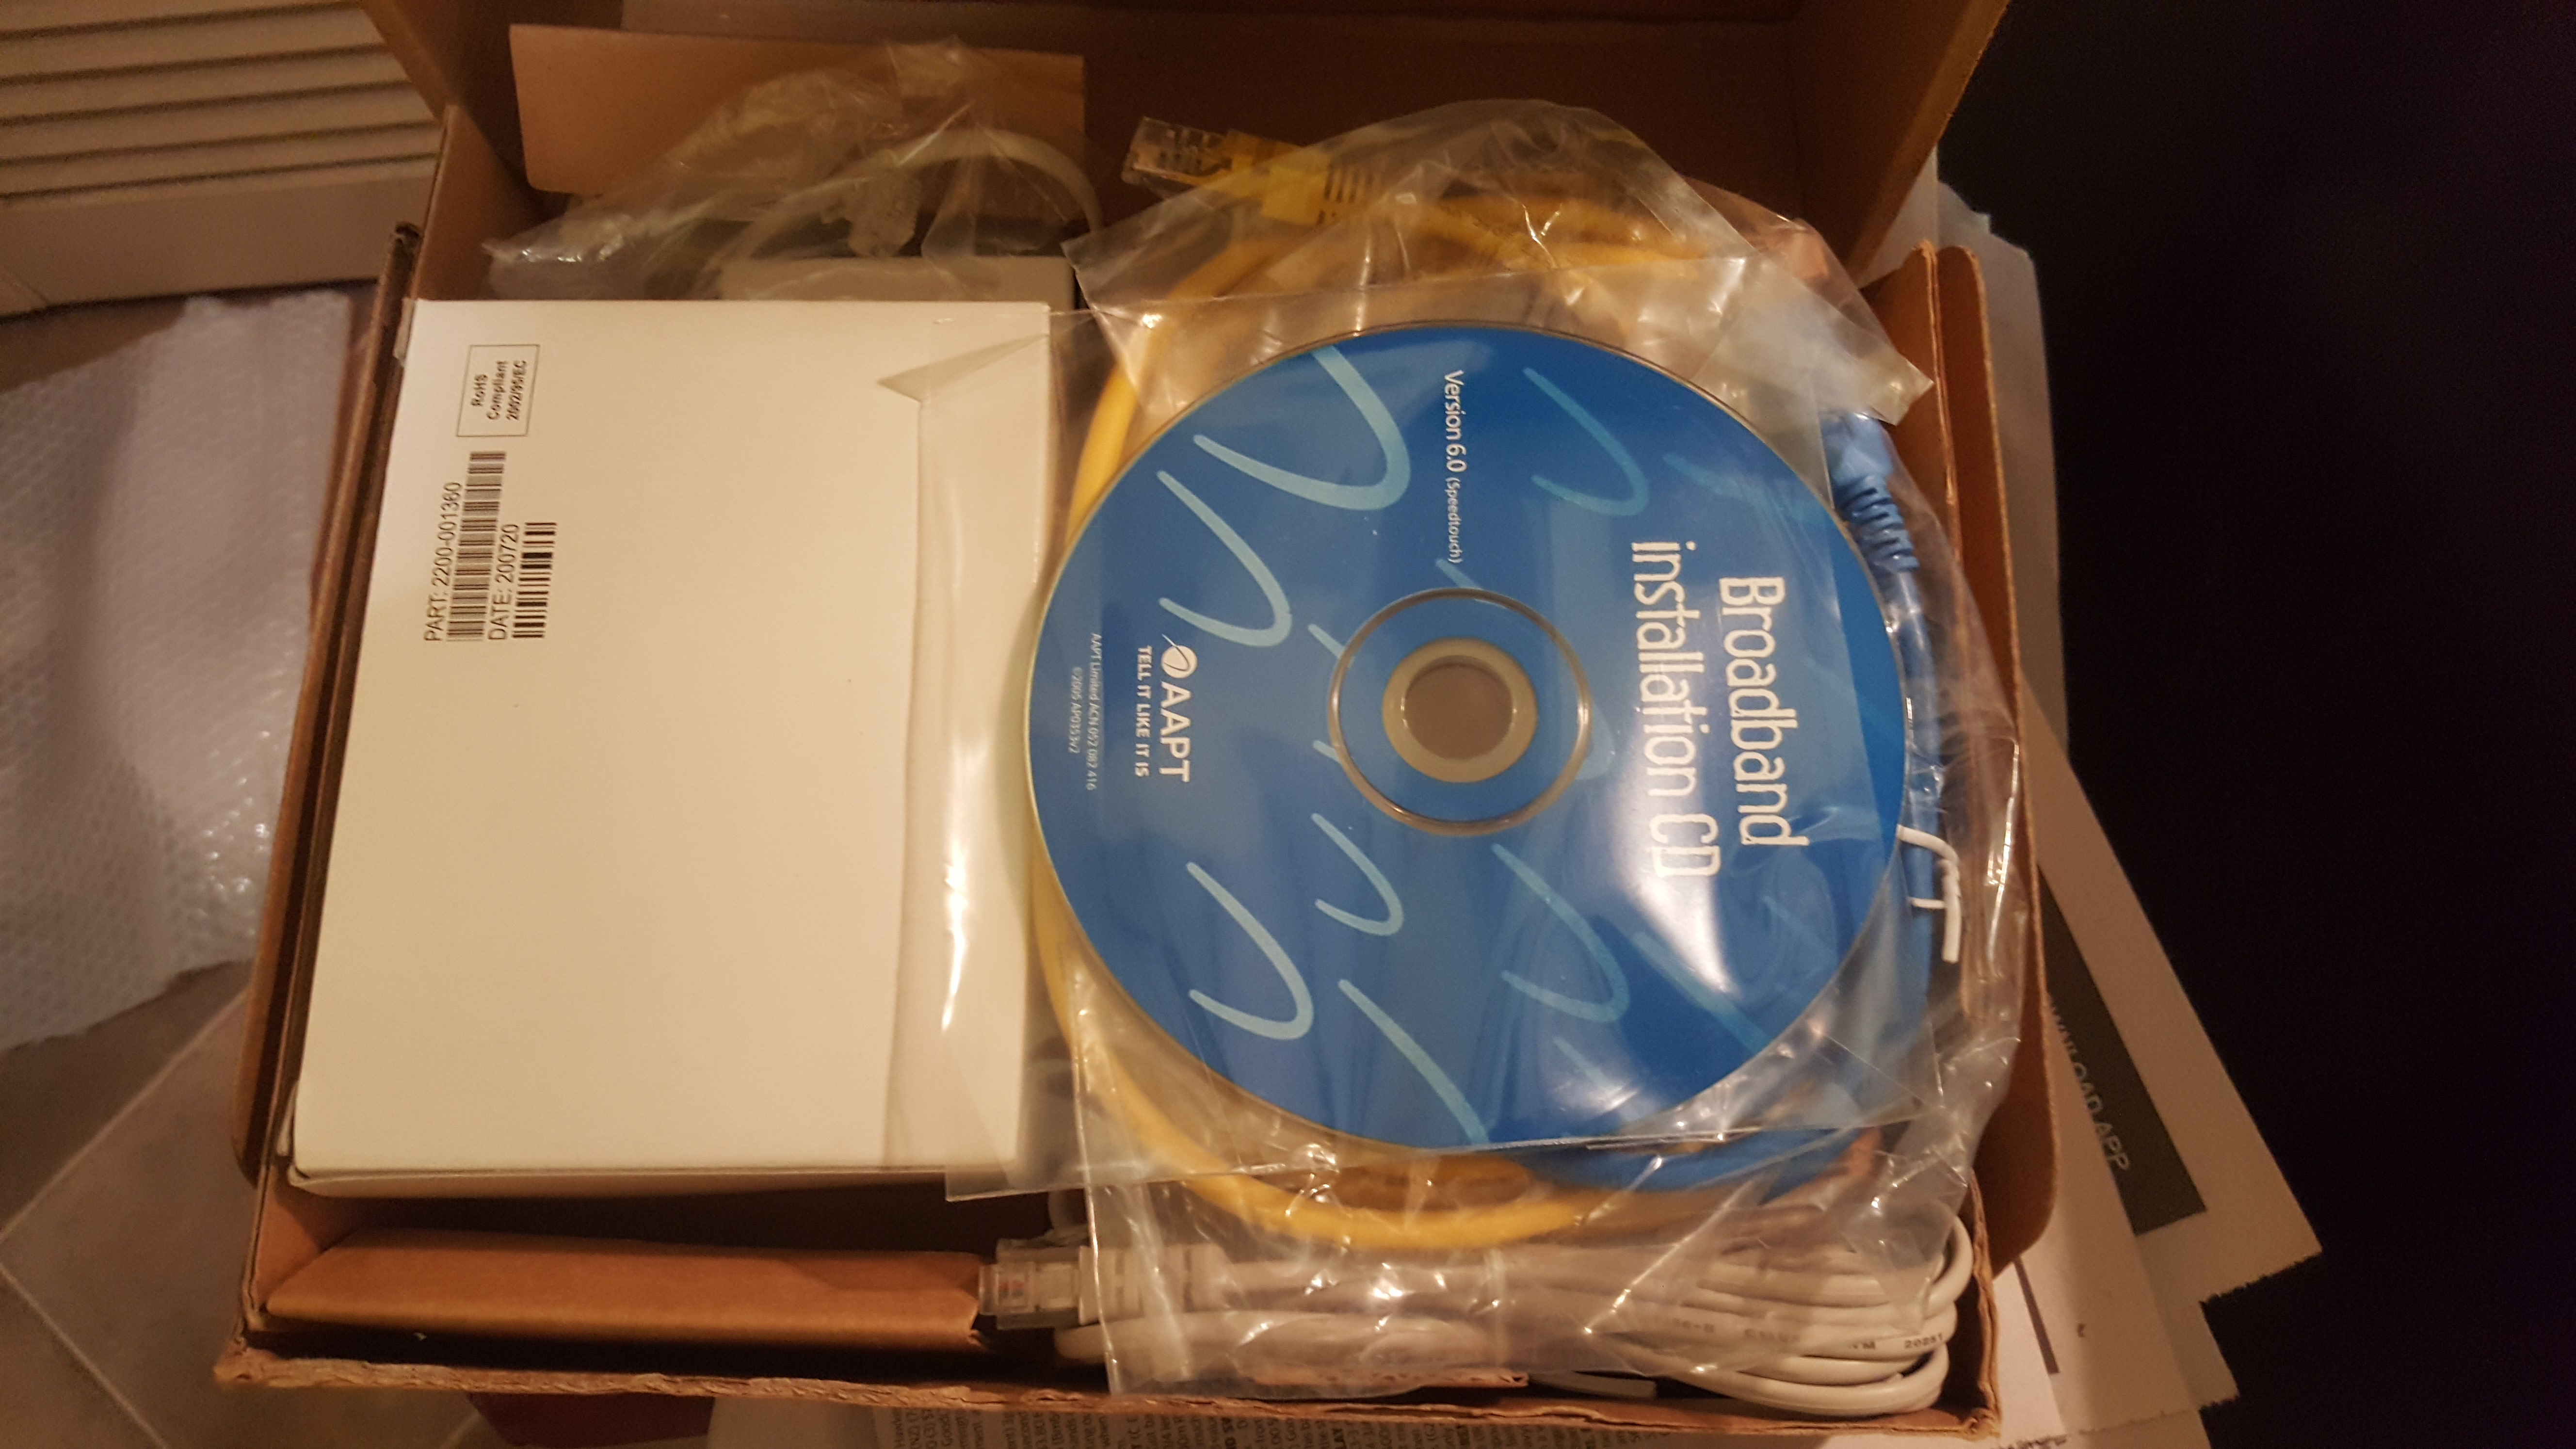 Thomson Speedtouch ADSL Modem Install DISC Cables All New